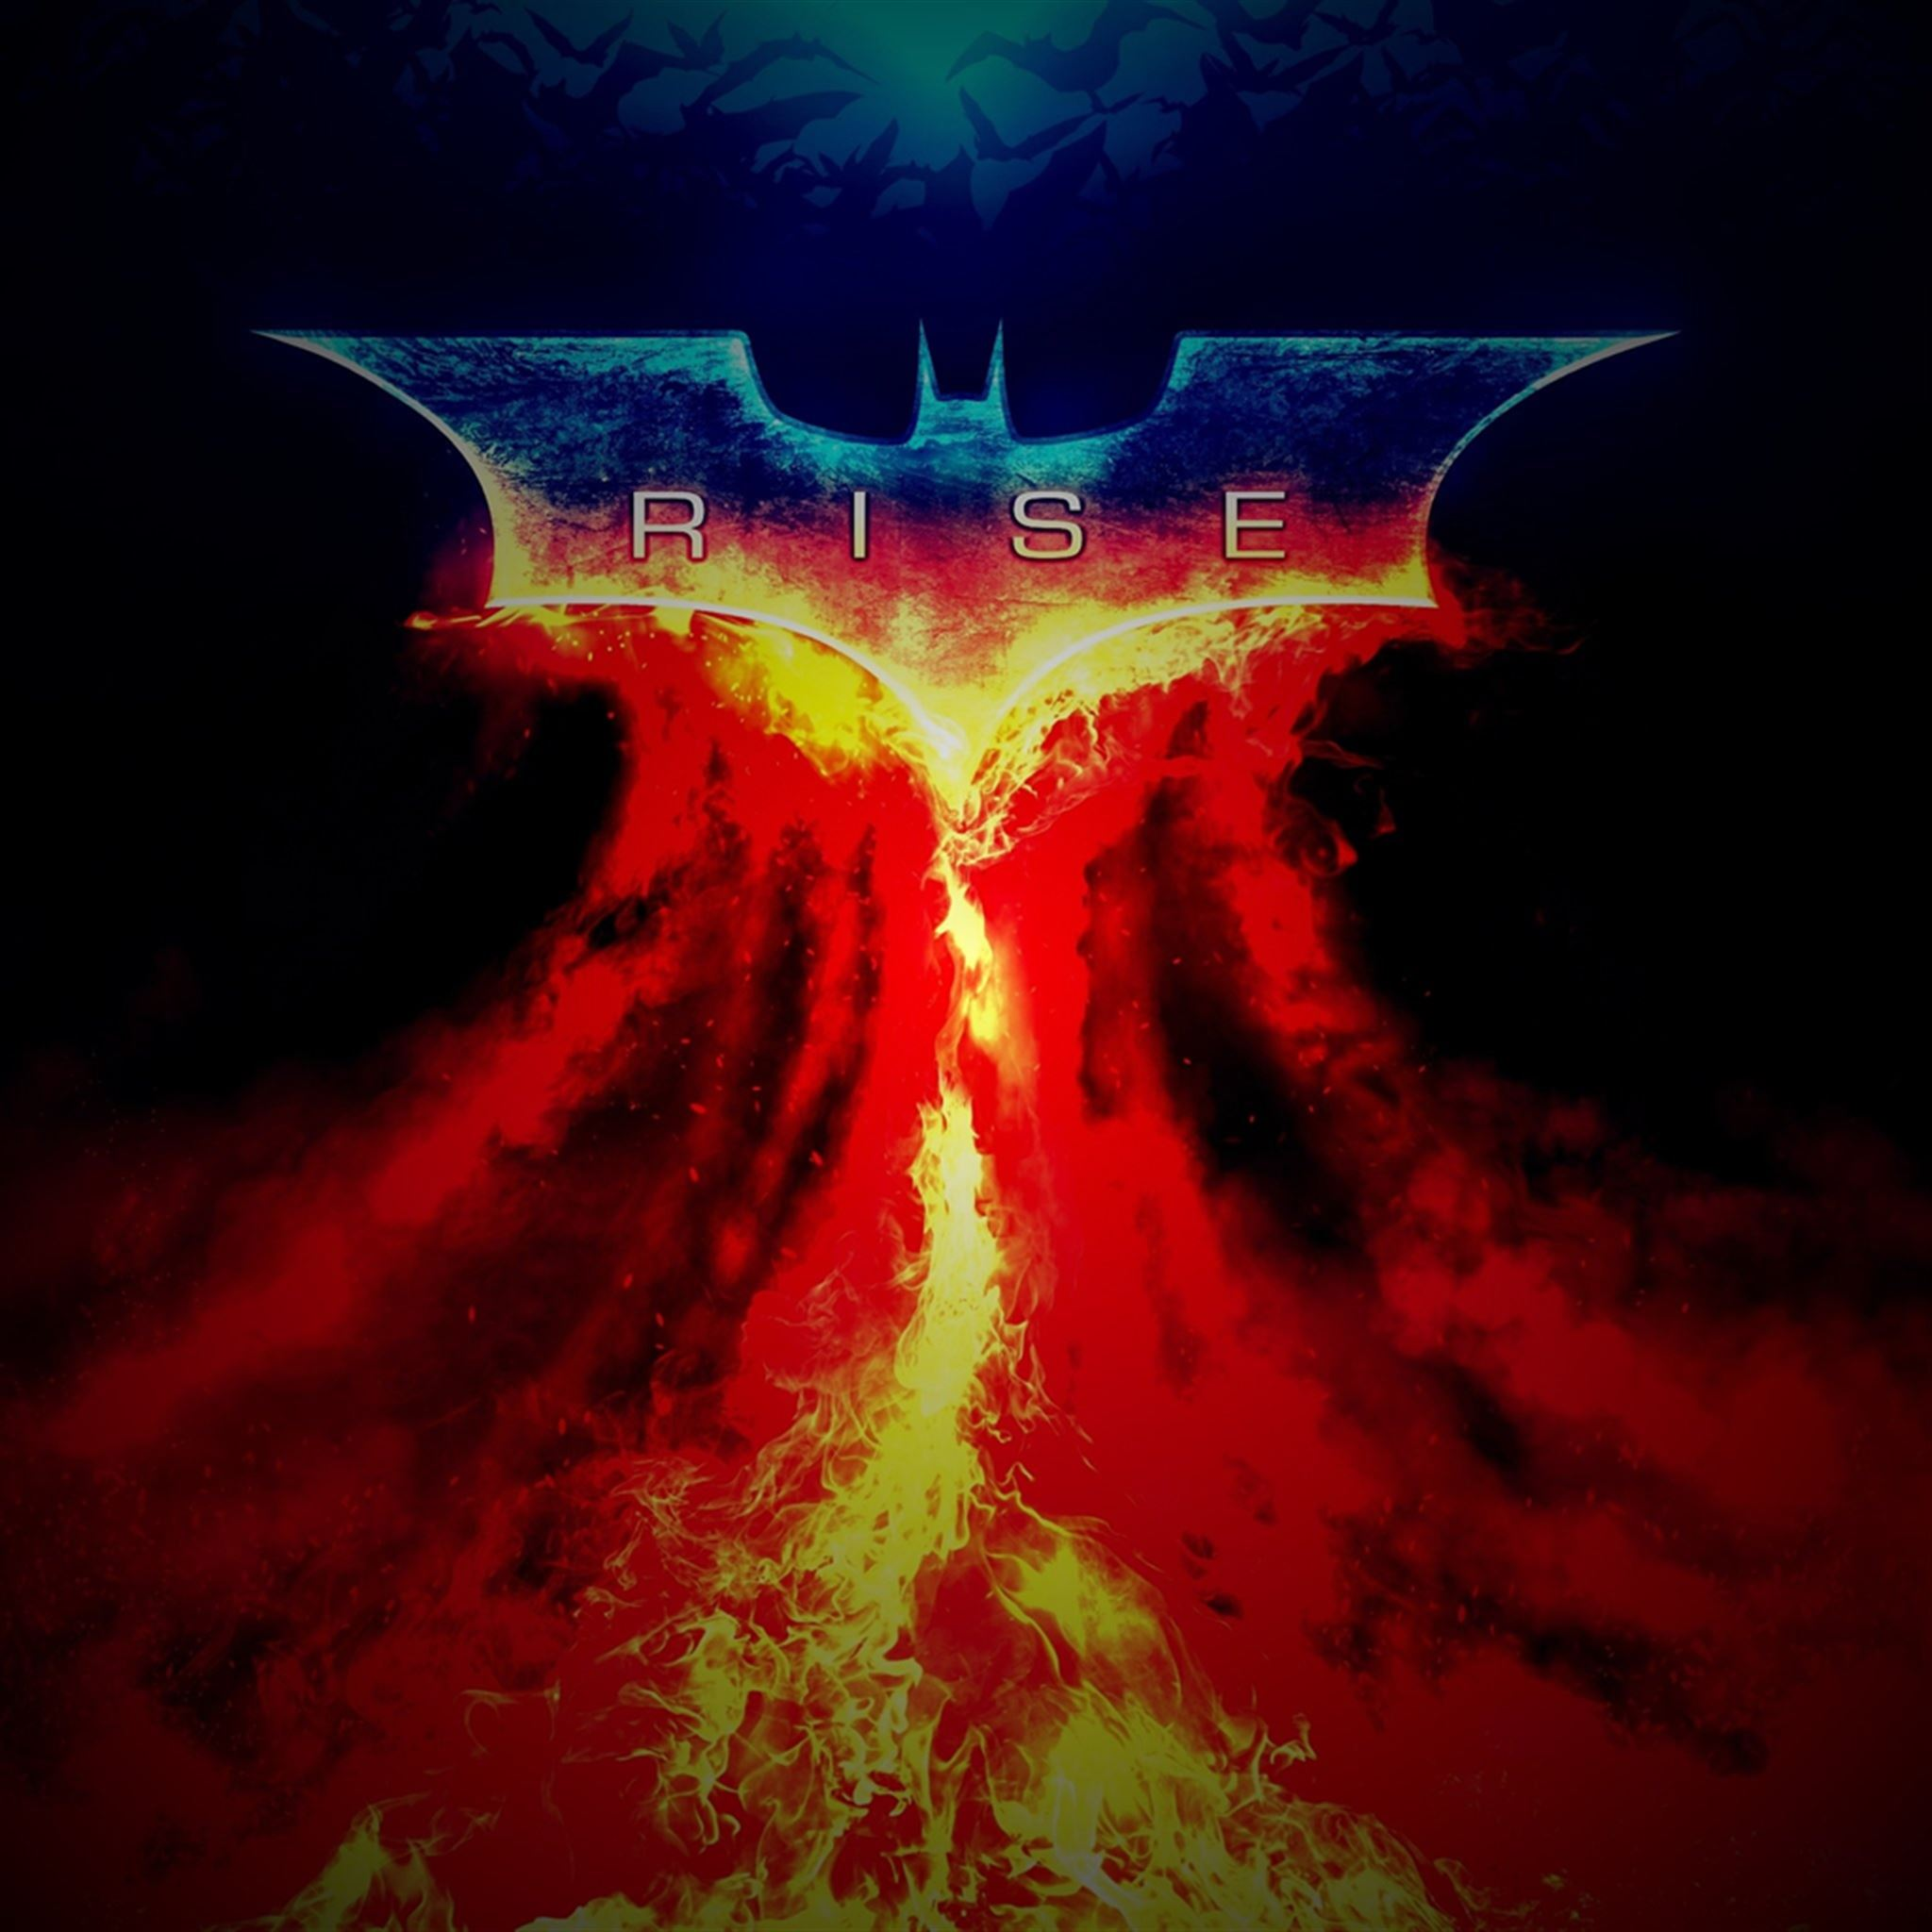 The Dark Knight Rises Ipad Wallpapers Free Download